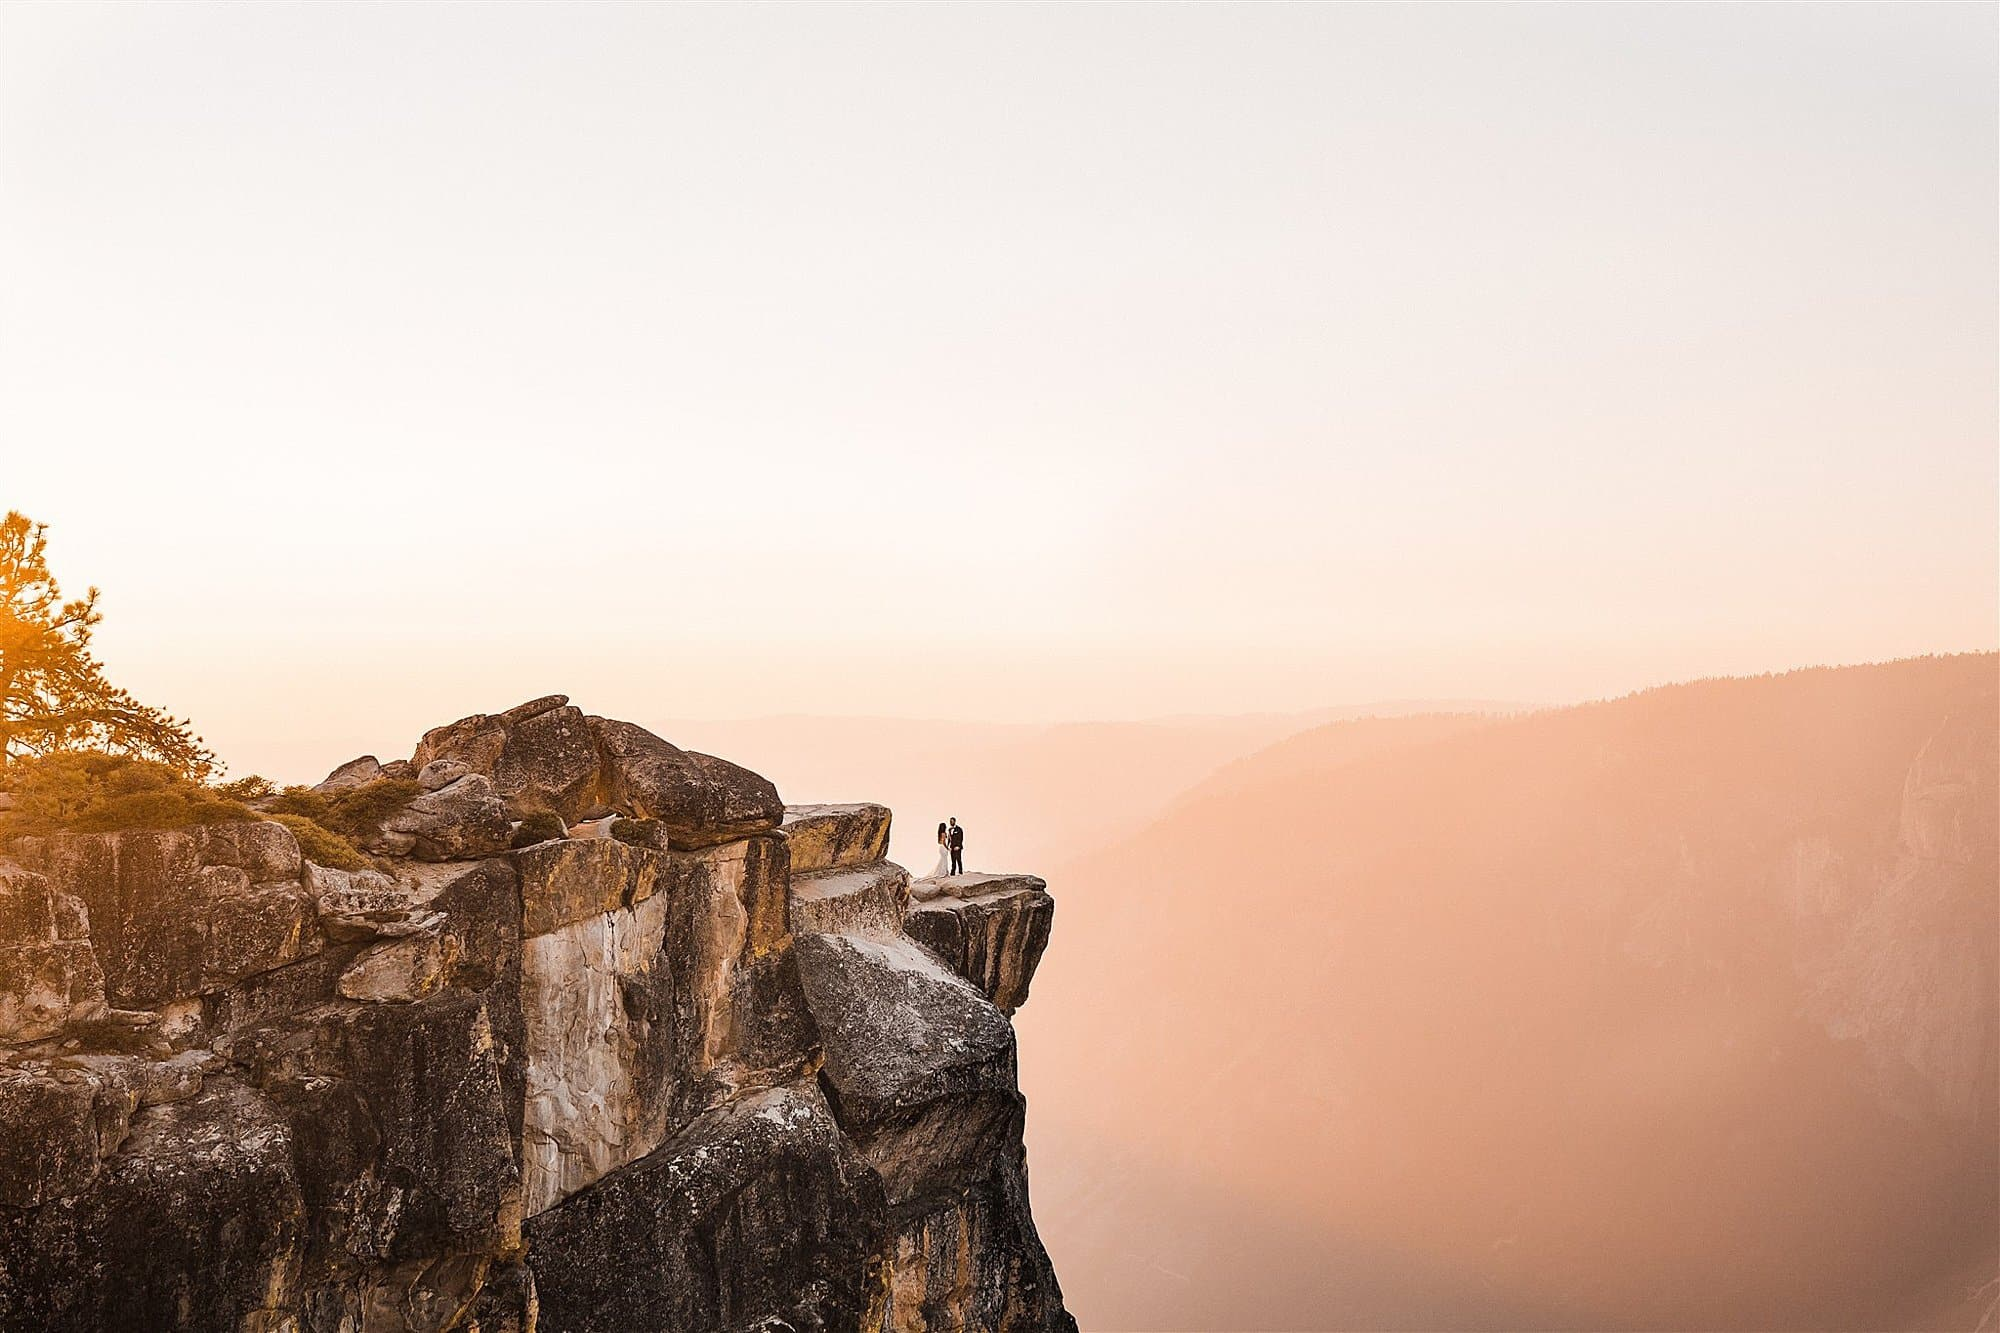 Taft_Point_Elopement_The_Foxes_Photography_0014.jpg